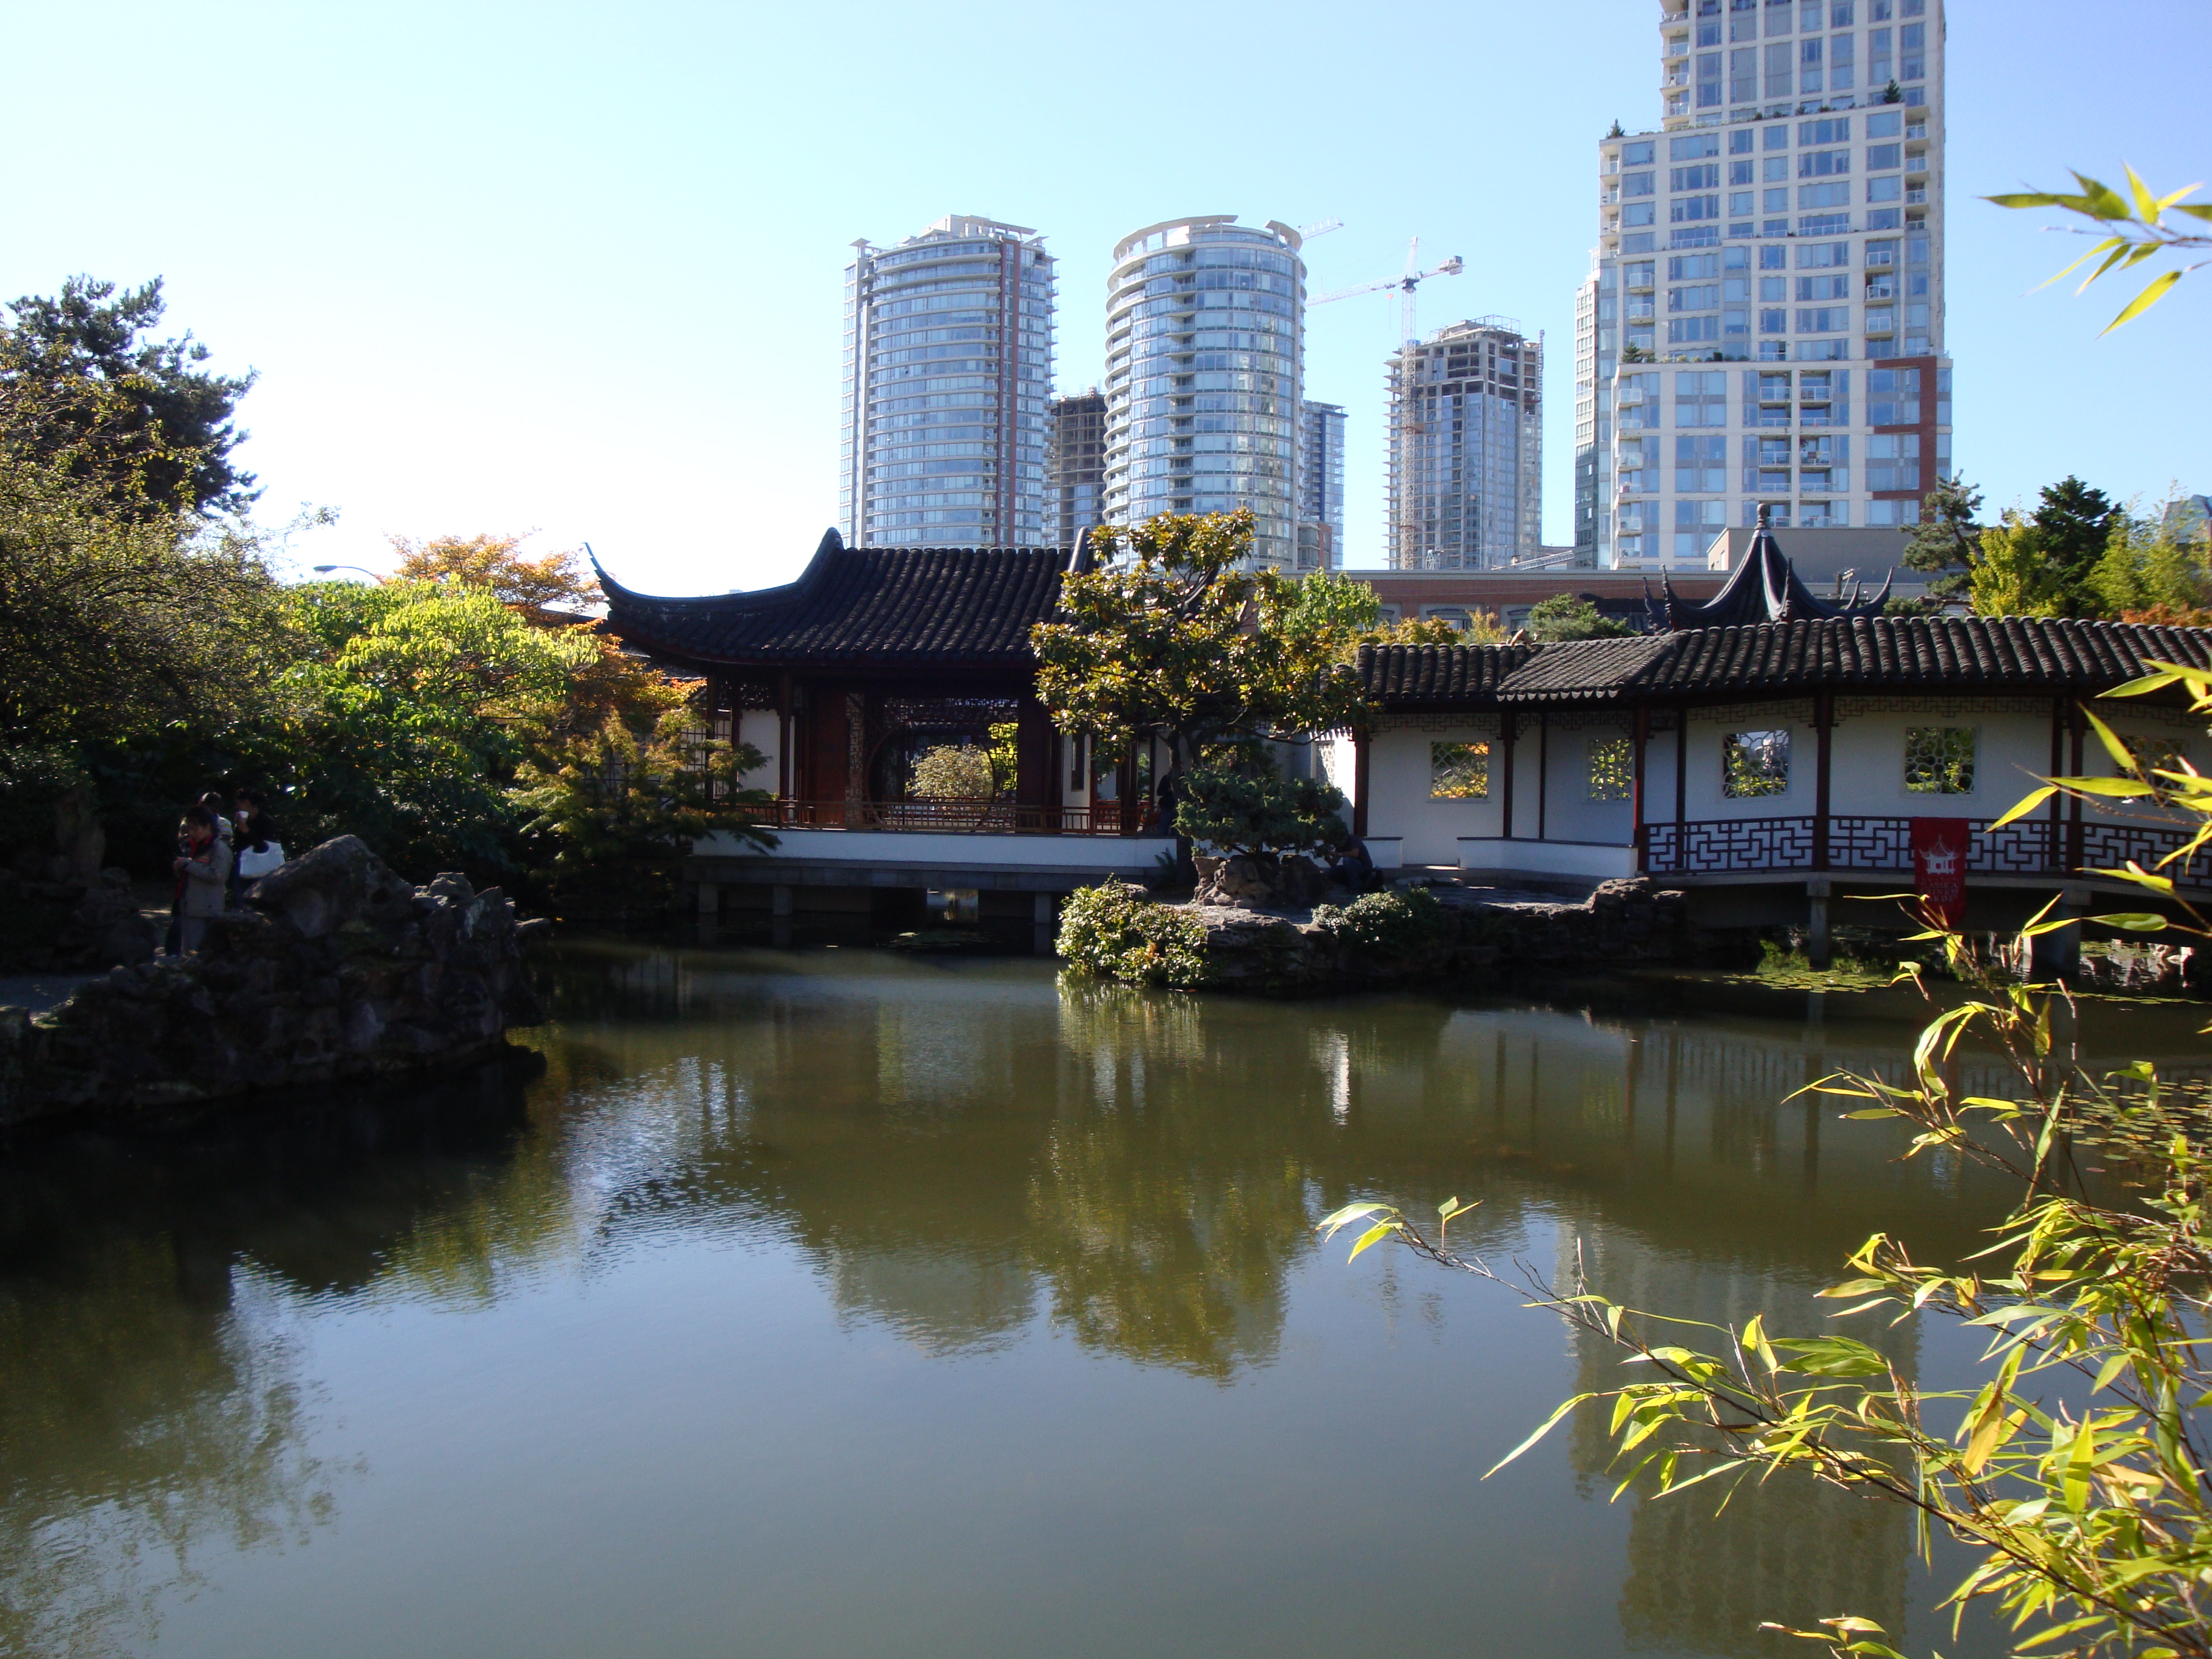 Dr. Sun Yat-Sen Park with the City of Glass rising above.